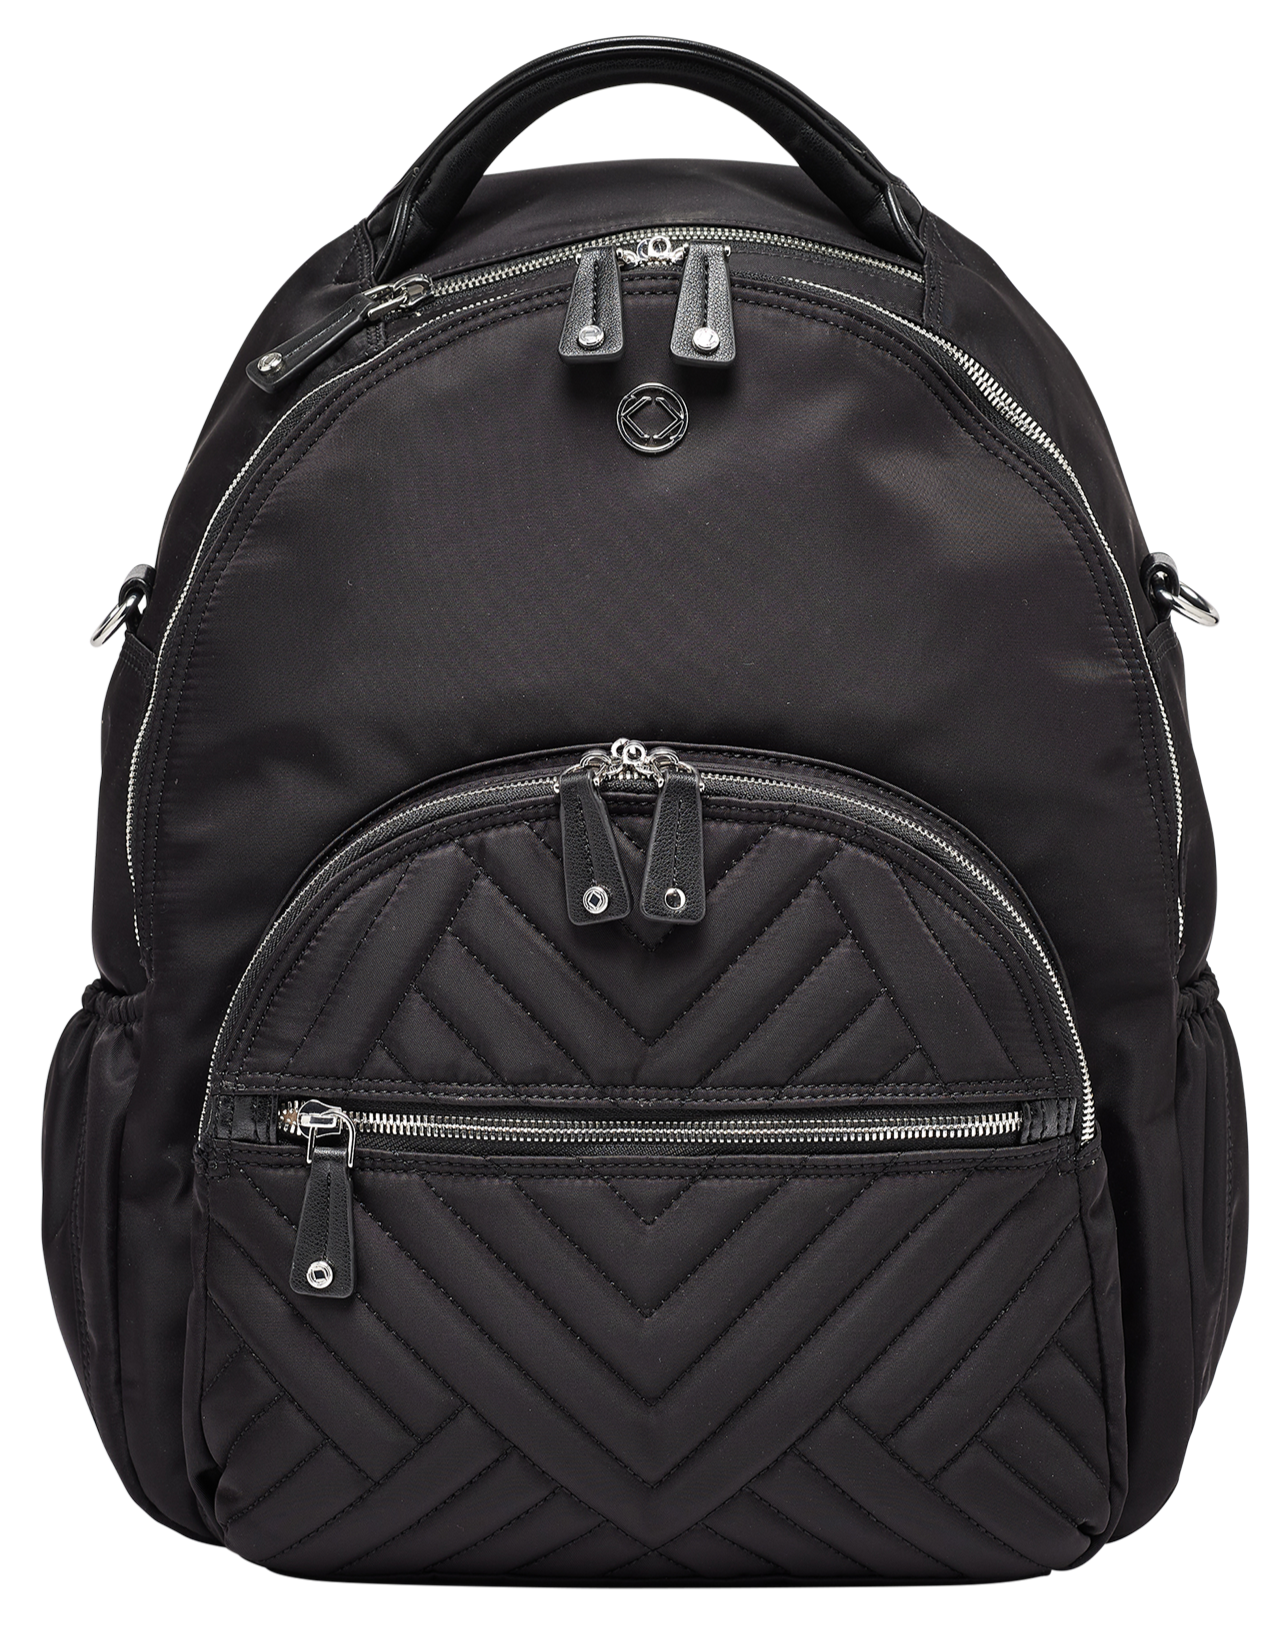 Joy XL Black Nylon Quilted Leather Backpack